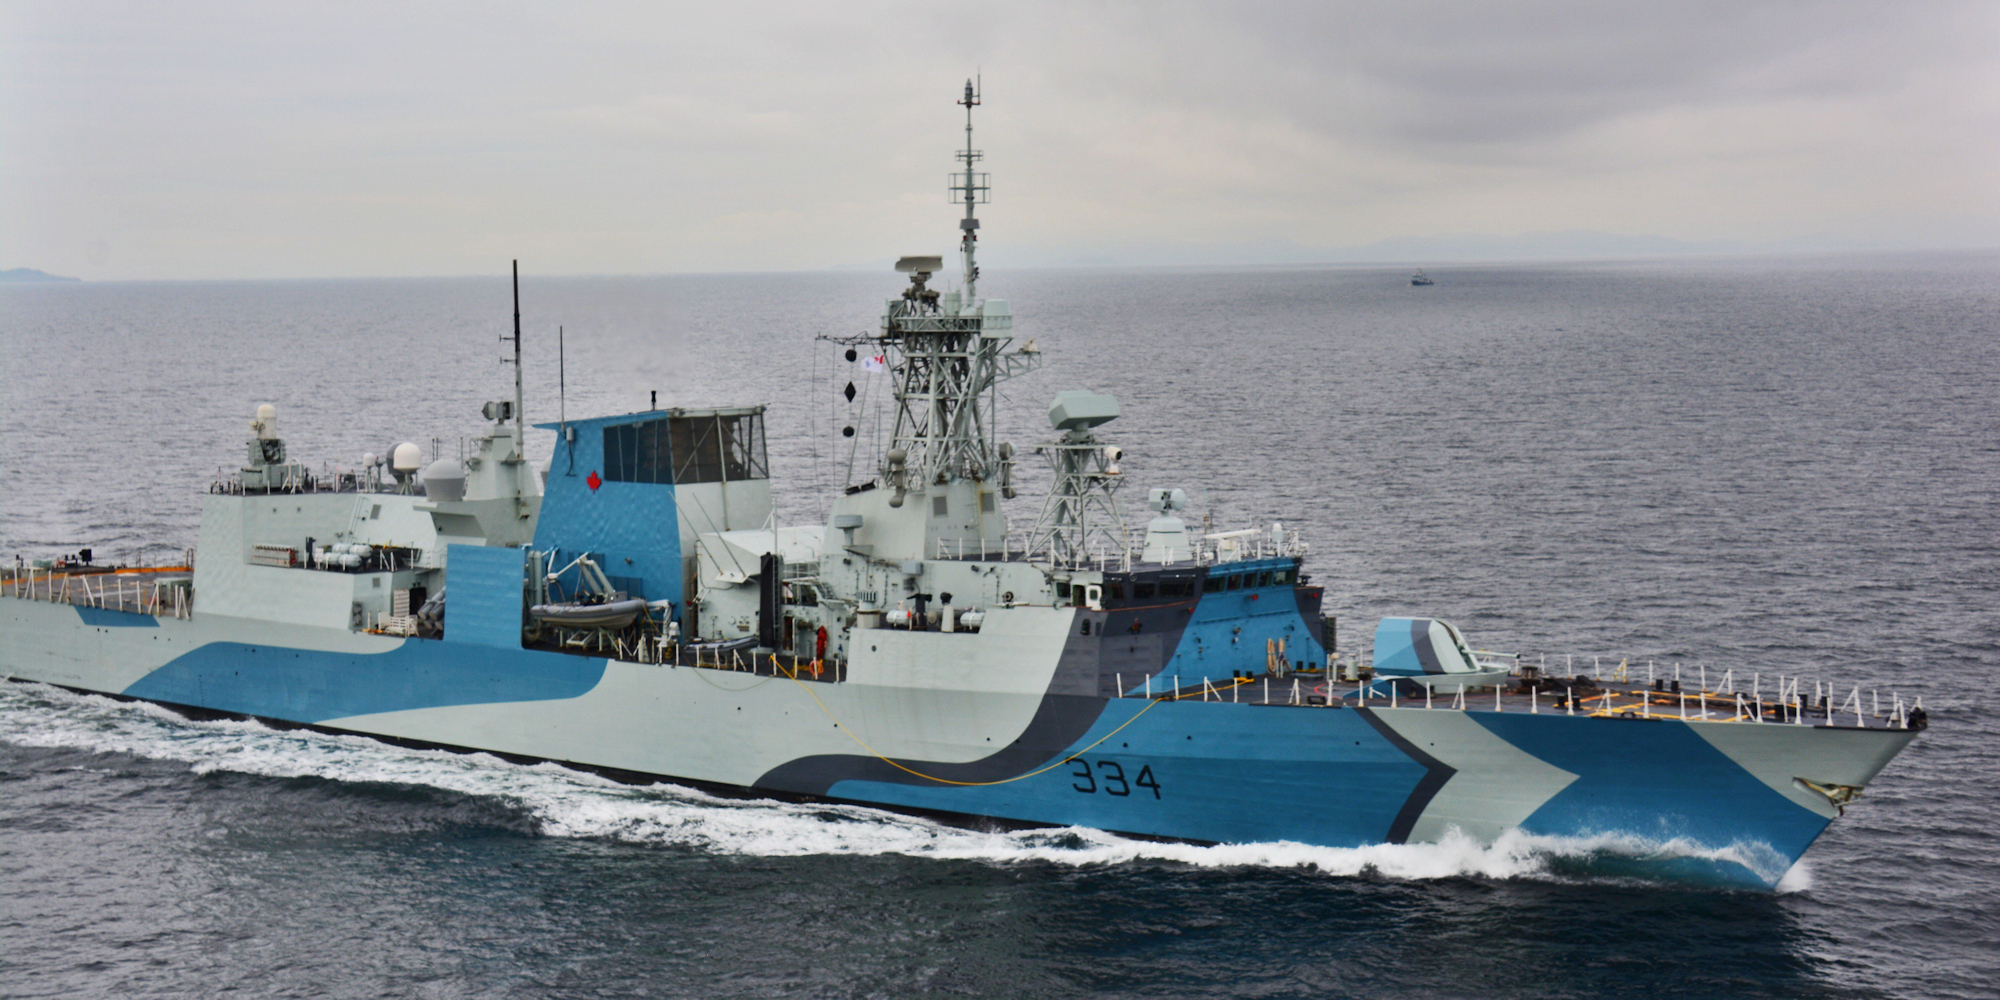 Only Hours After Setting Sail, COVID-19 Concerns Send HMCS Regina Back To Port